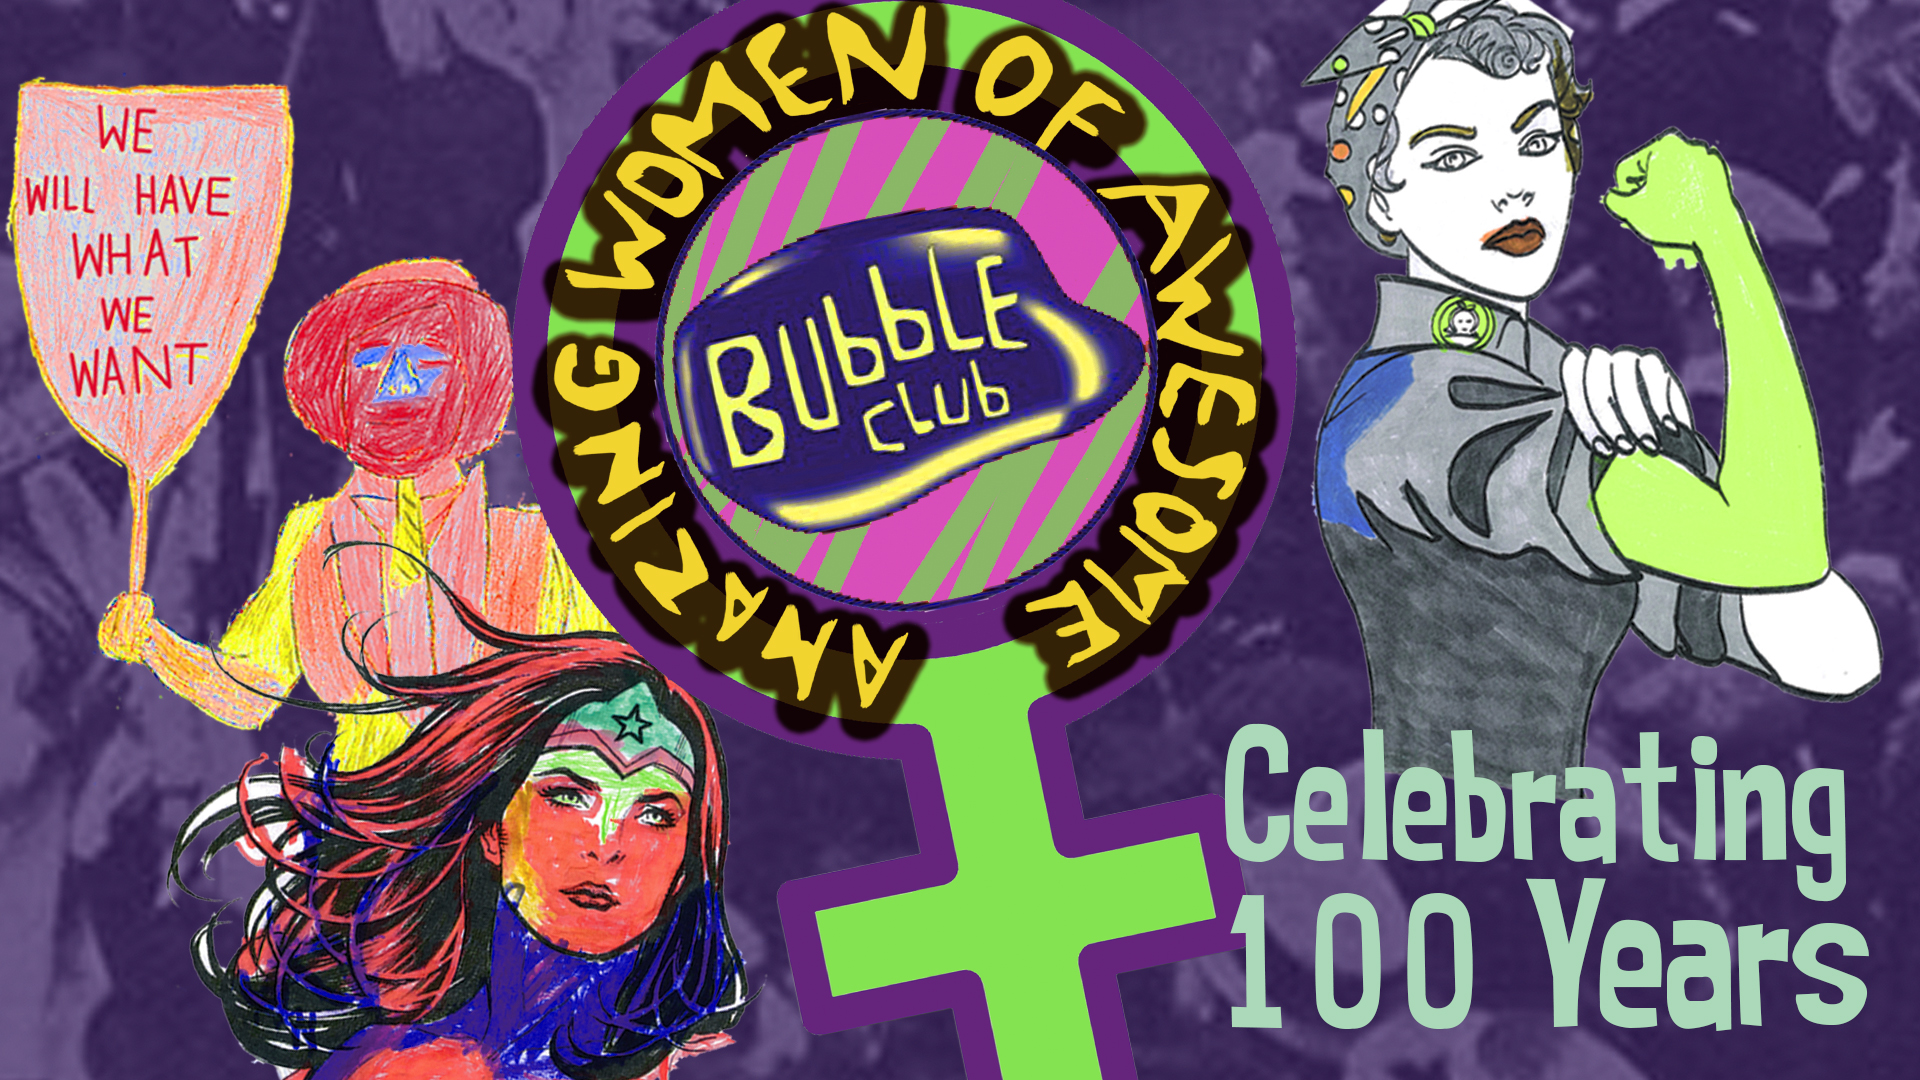 FB Women Event Banner.jpg